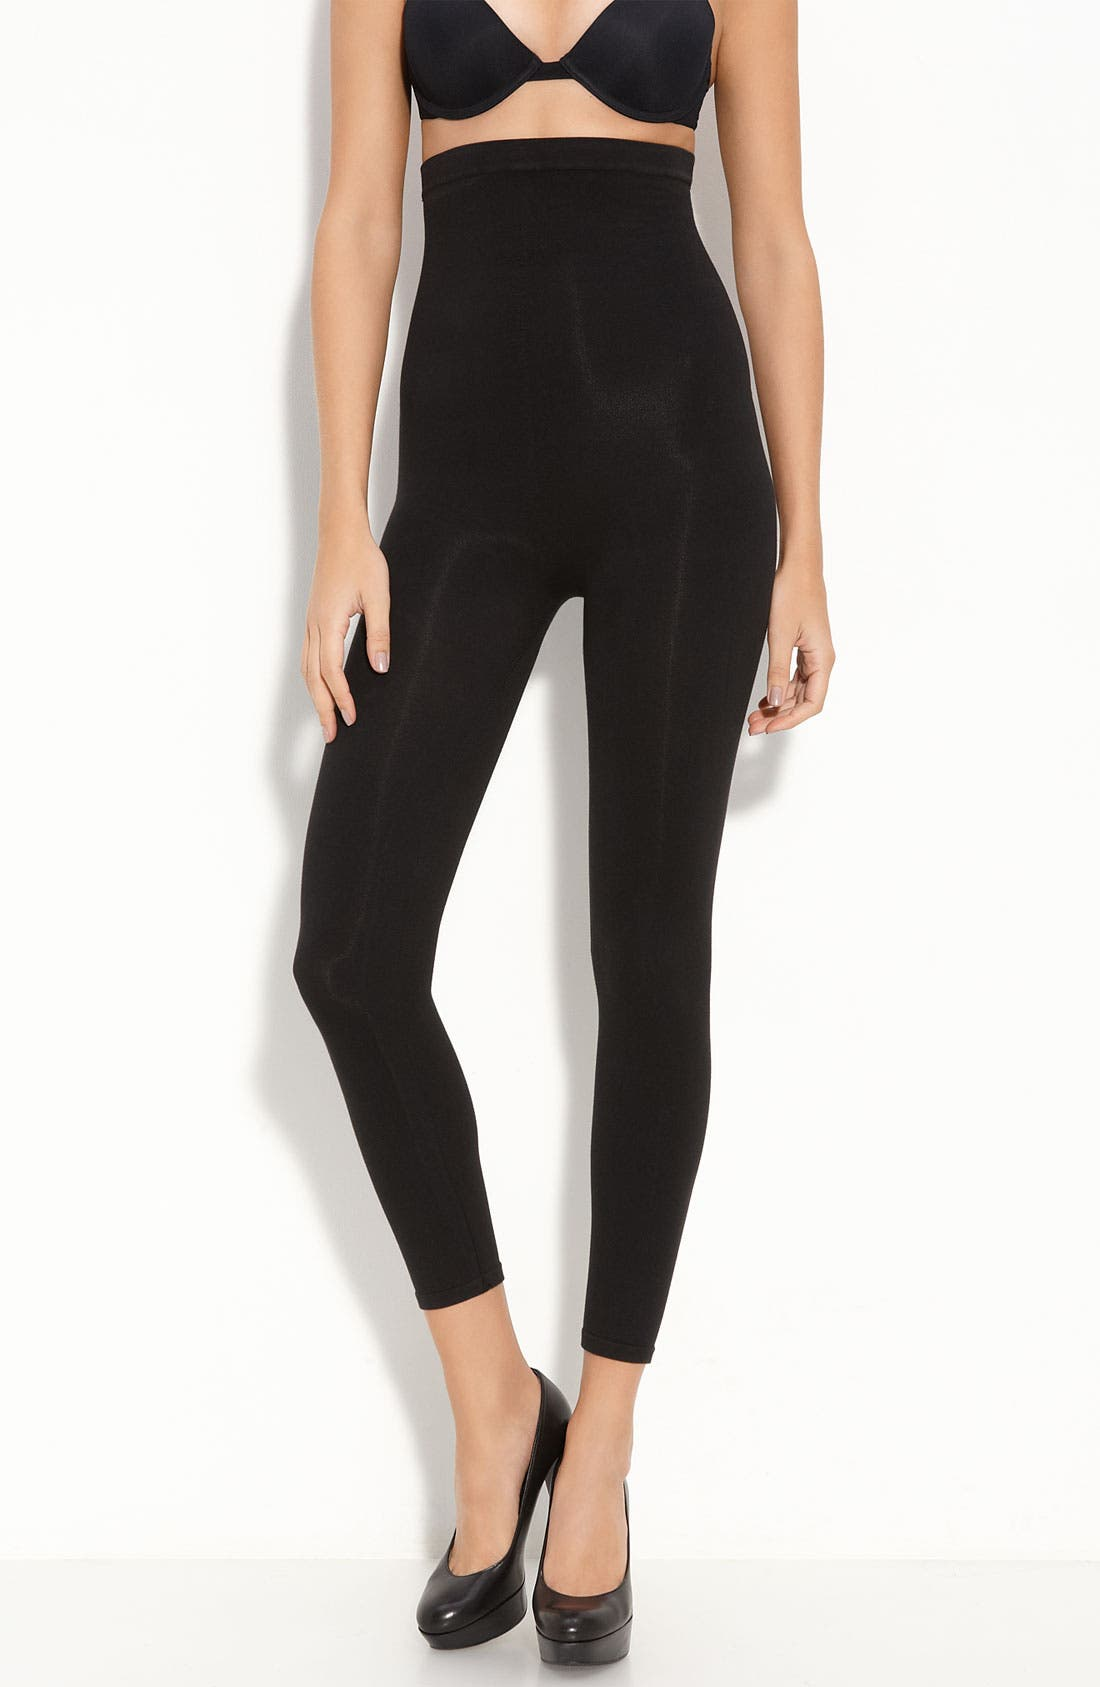 Main Image - SPANX® 'Look-at-Me' High Waist Shaping Leggings